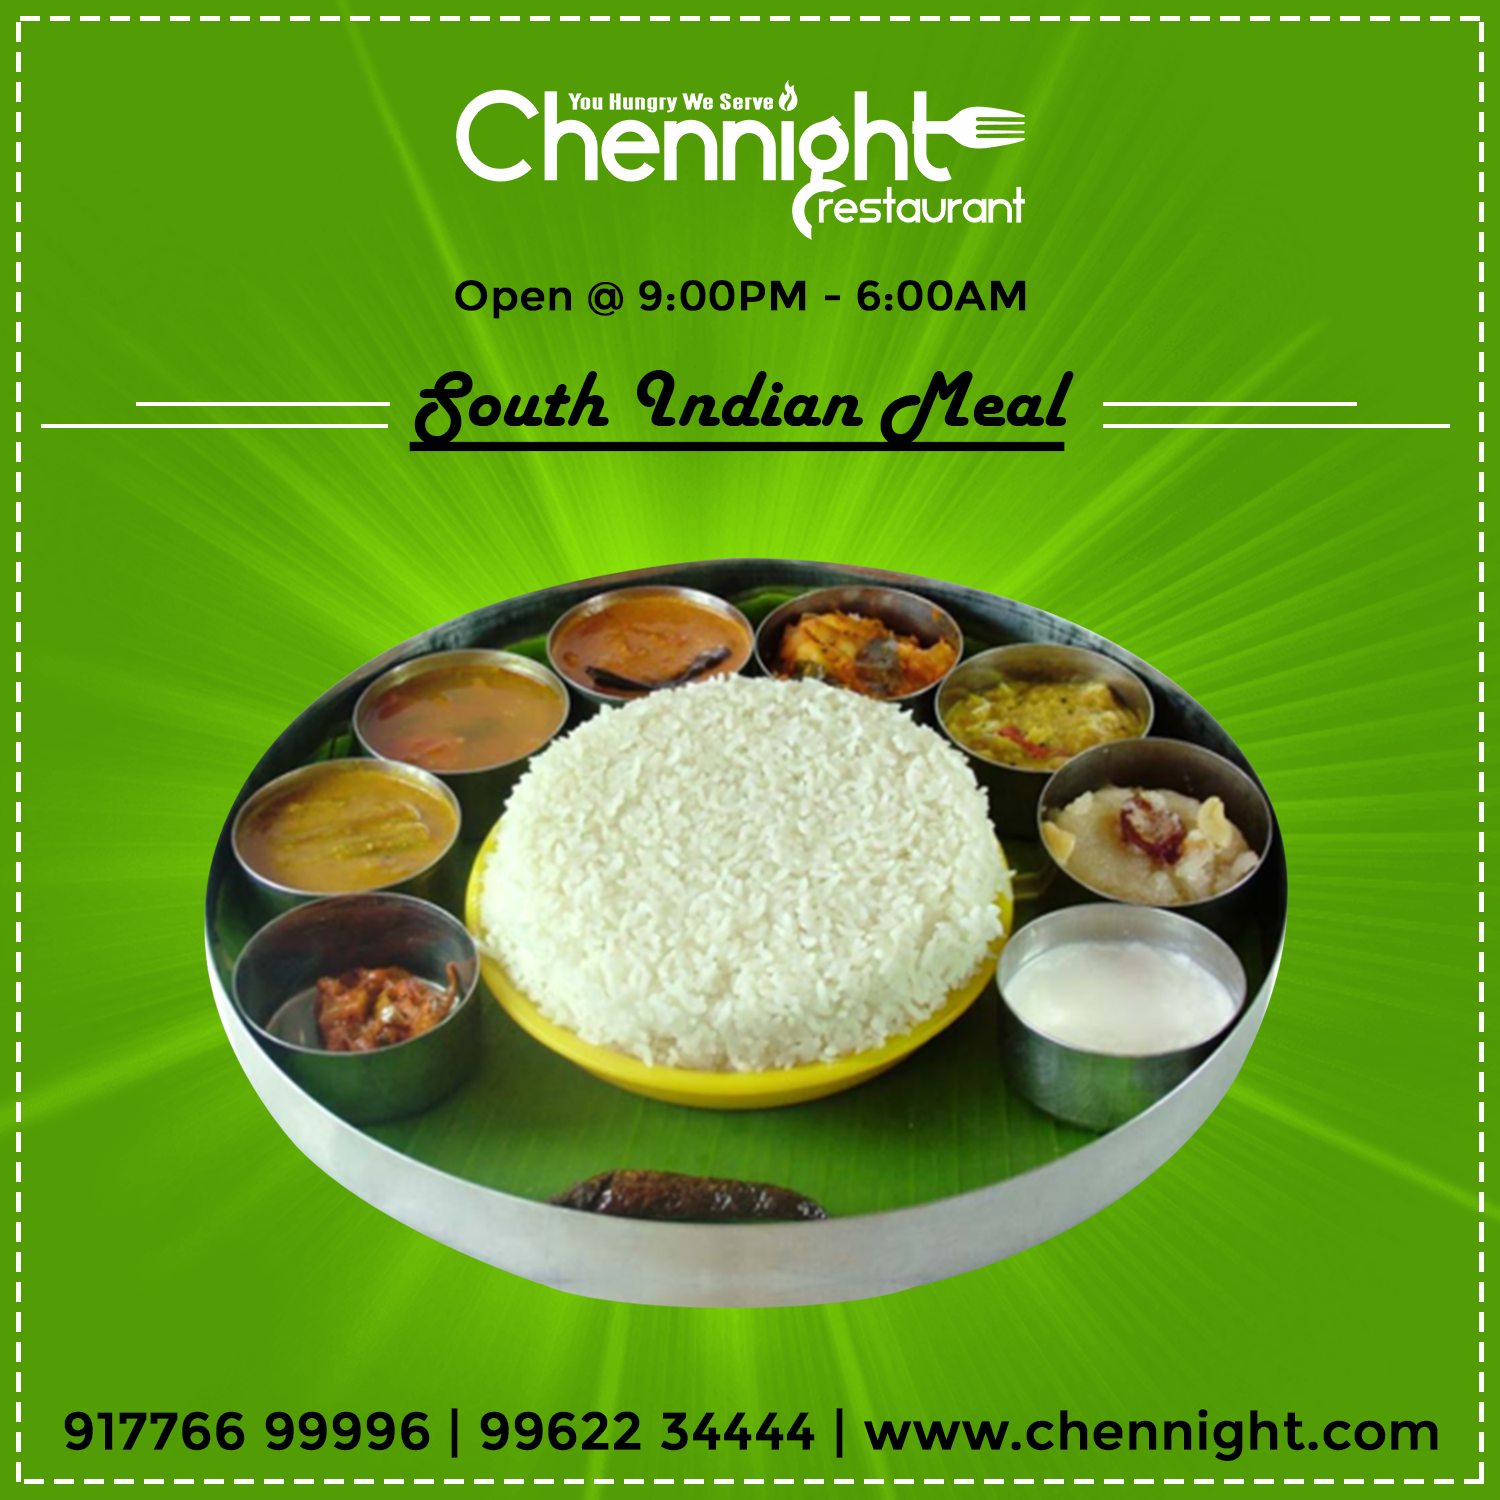 Enjoy The Flavors Of South Indian Cuisine By Ordering Chennight Restaurant Call Us 91766 99996 996 South Indian Food Indian Breakfast Indian Food Recipes